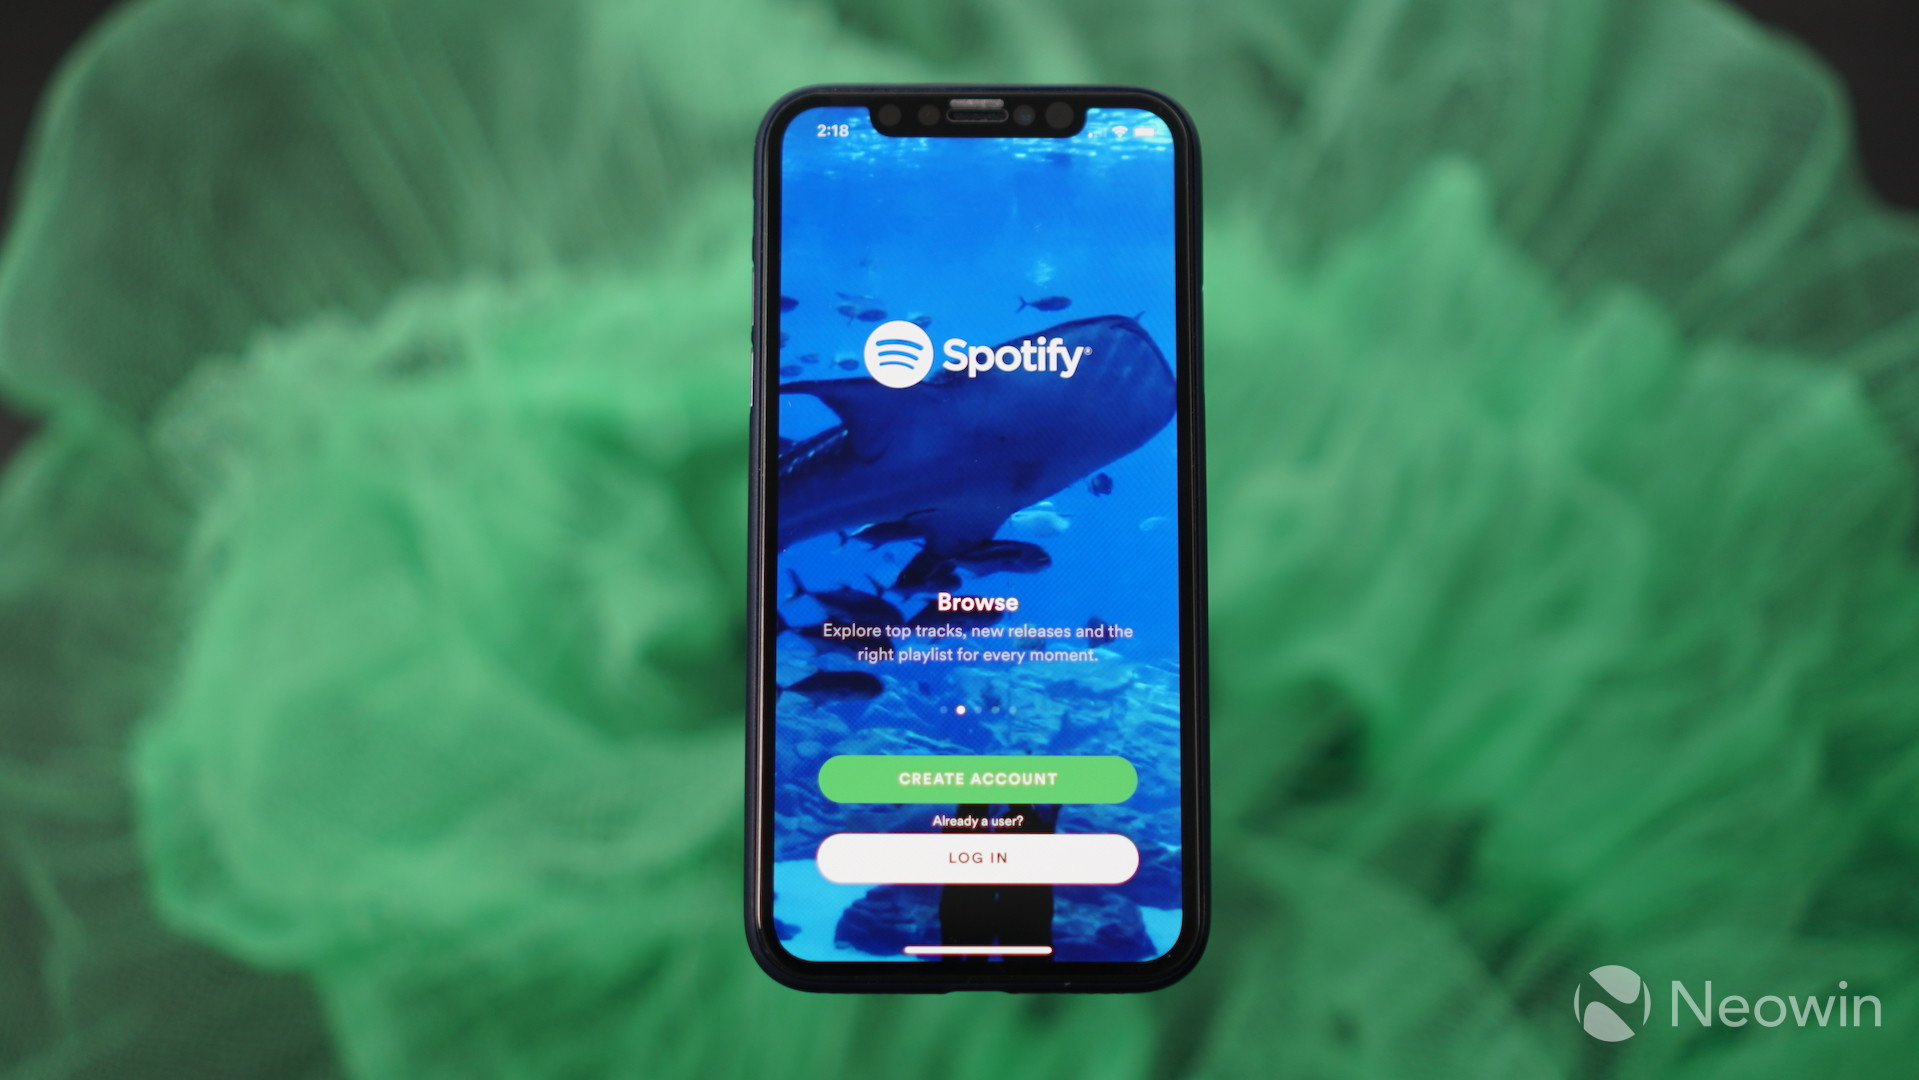 Spotify update adds support for iPhone X display - Neowin